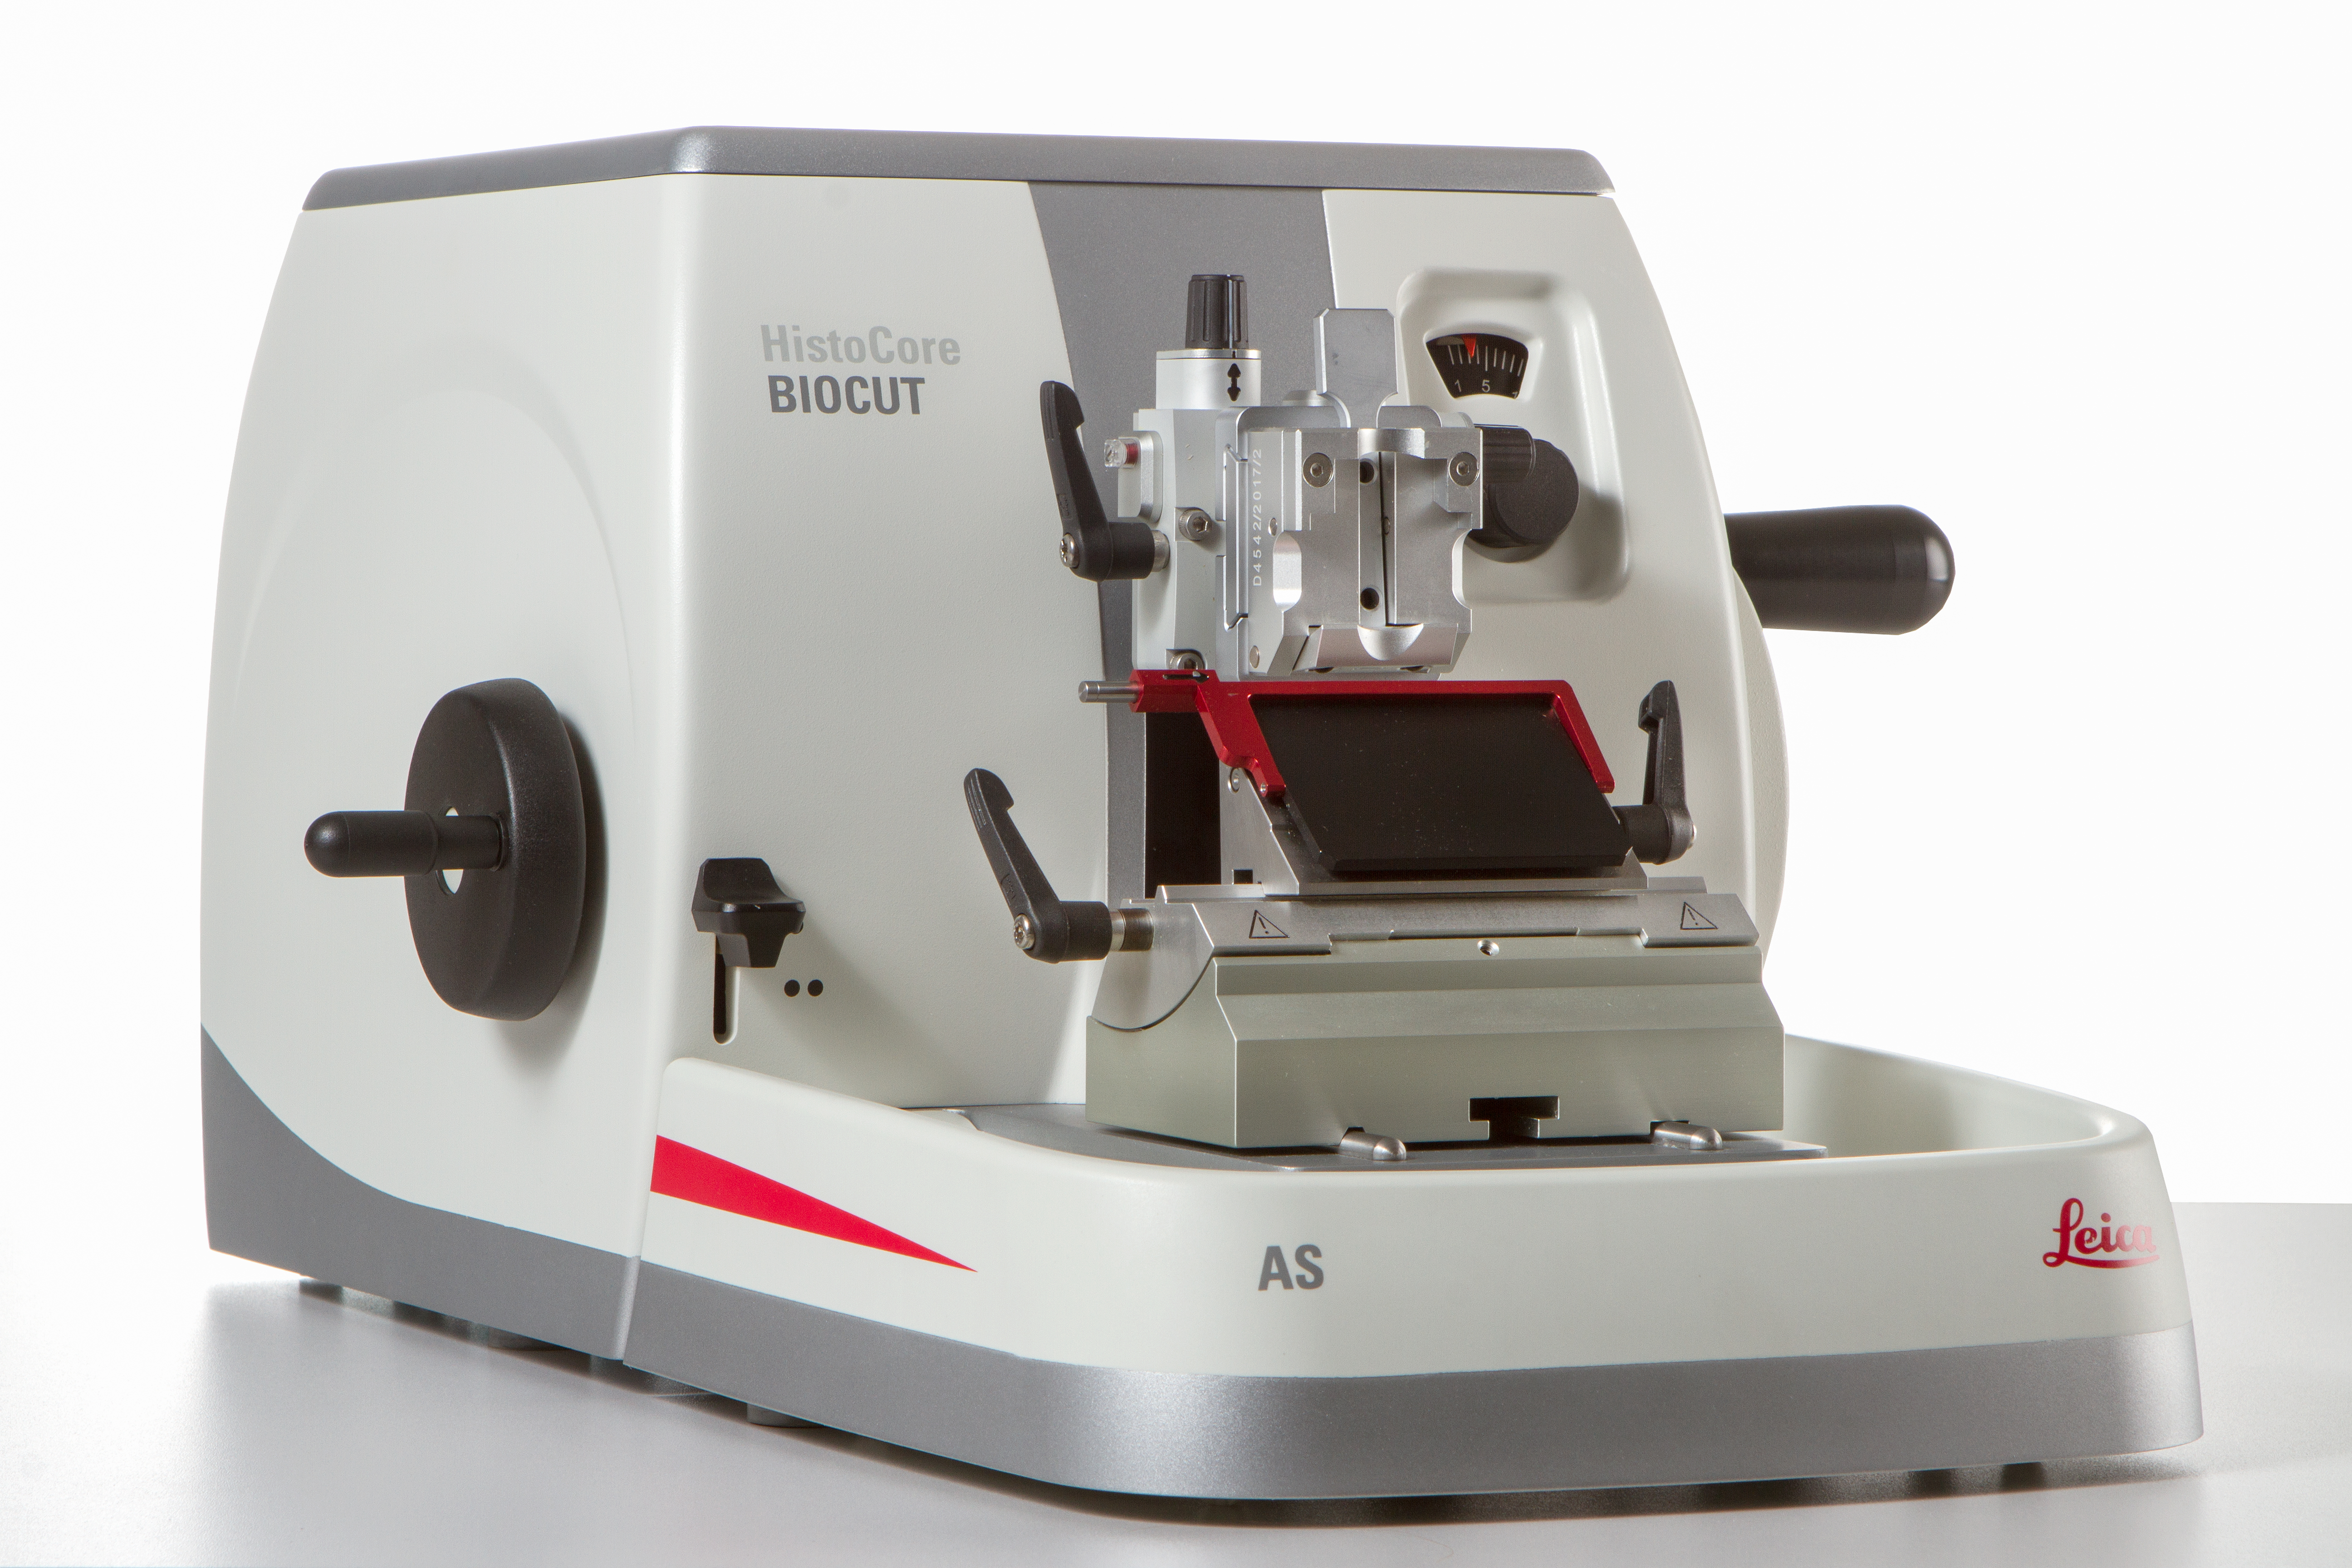 HistoCore NANOCUT Automated Research & Special Applications Rotary Microtome